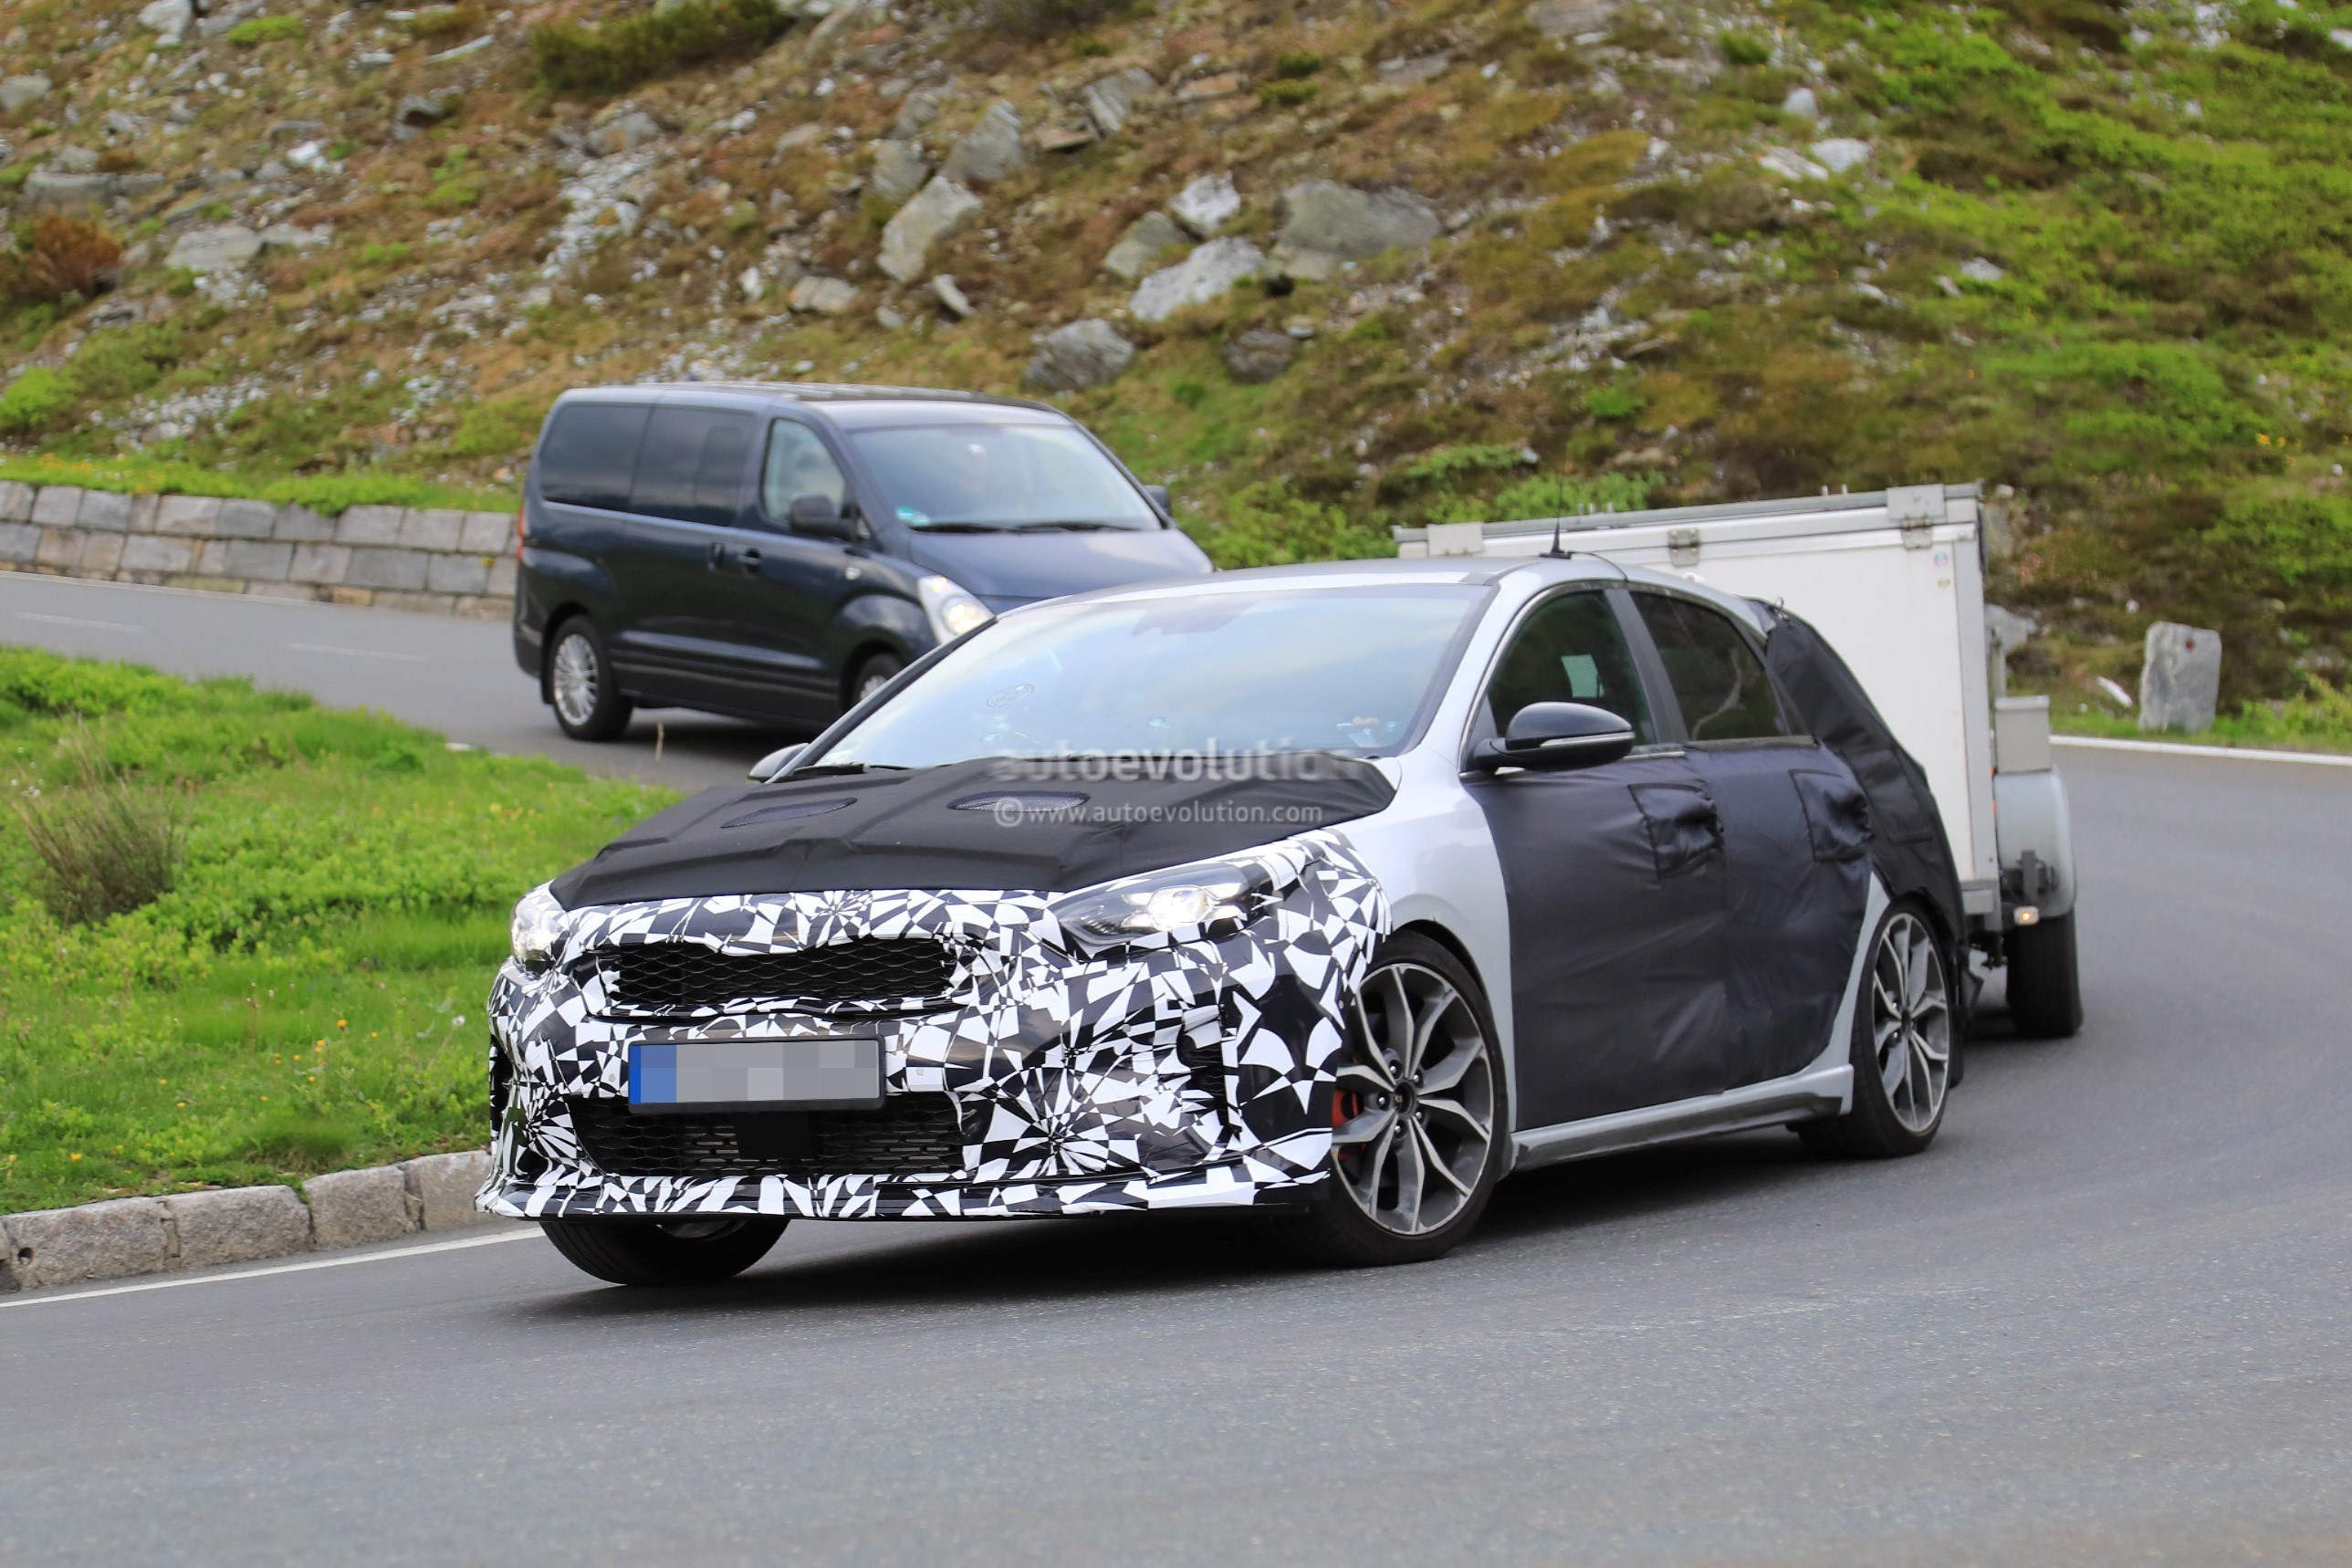 Spyshots 2019 Kia Ceed Gt Caught Towing At High Altitude